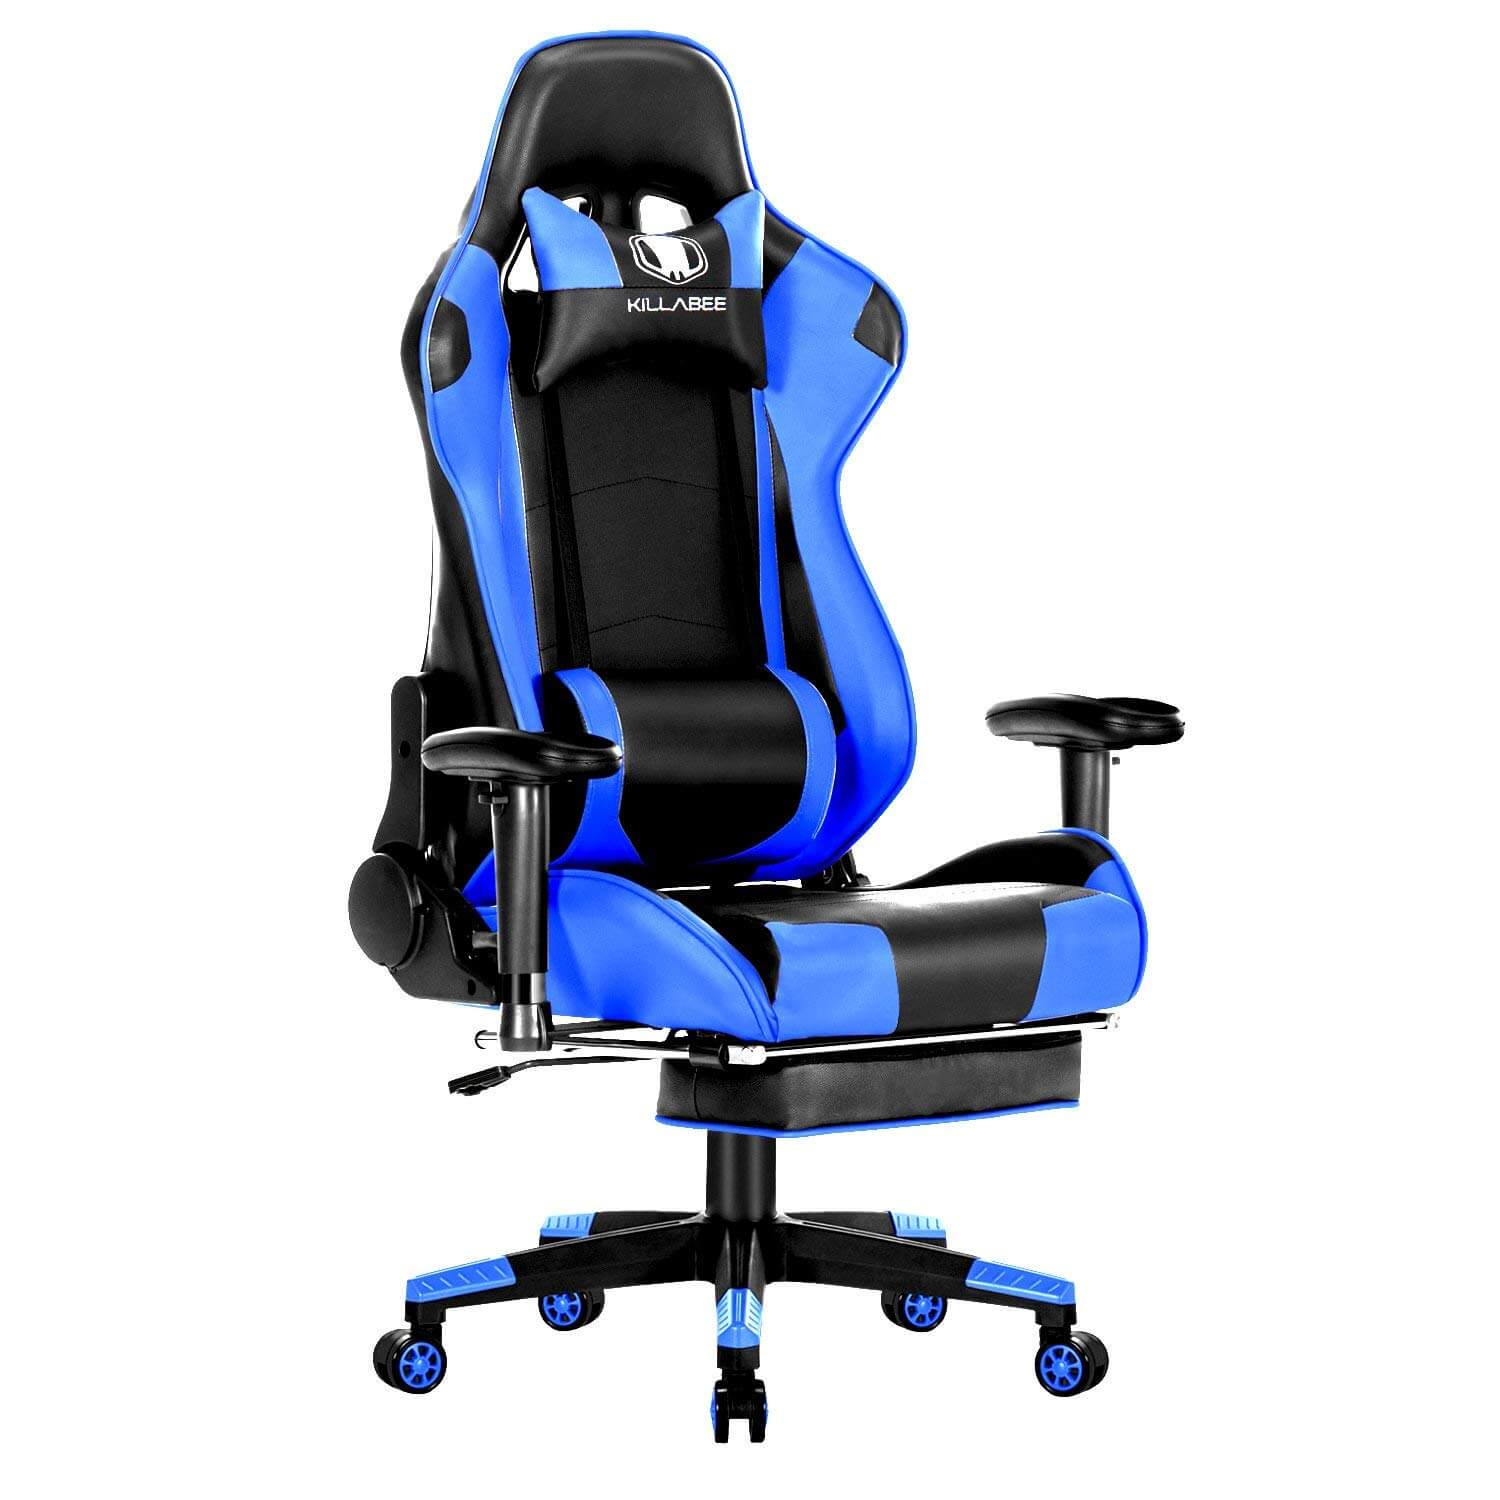 killabee big and tall 350 lb gaming chair review. Black Bedroom Furniture Sets. Home Design Ideas